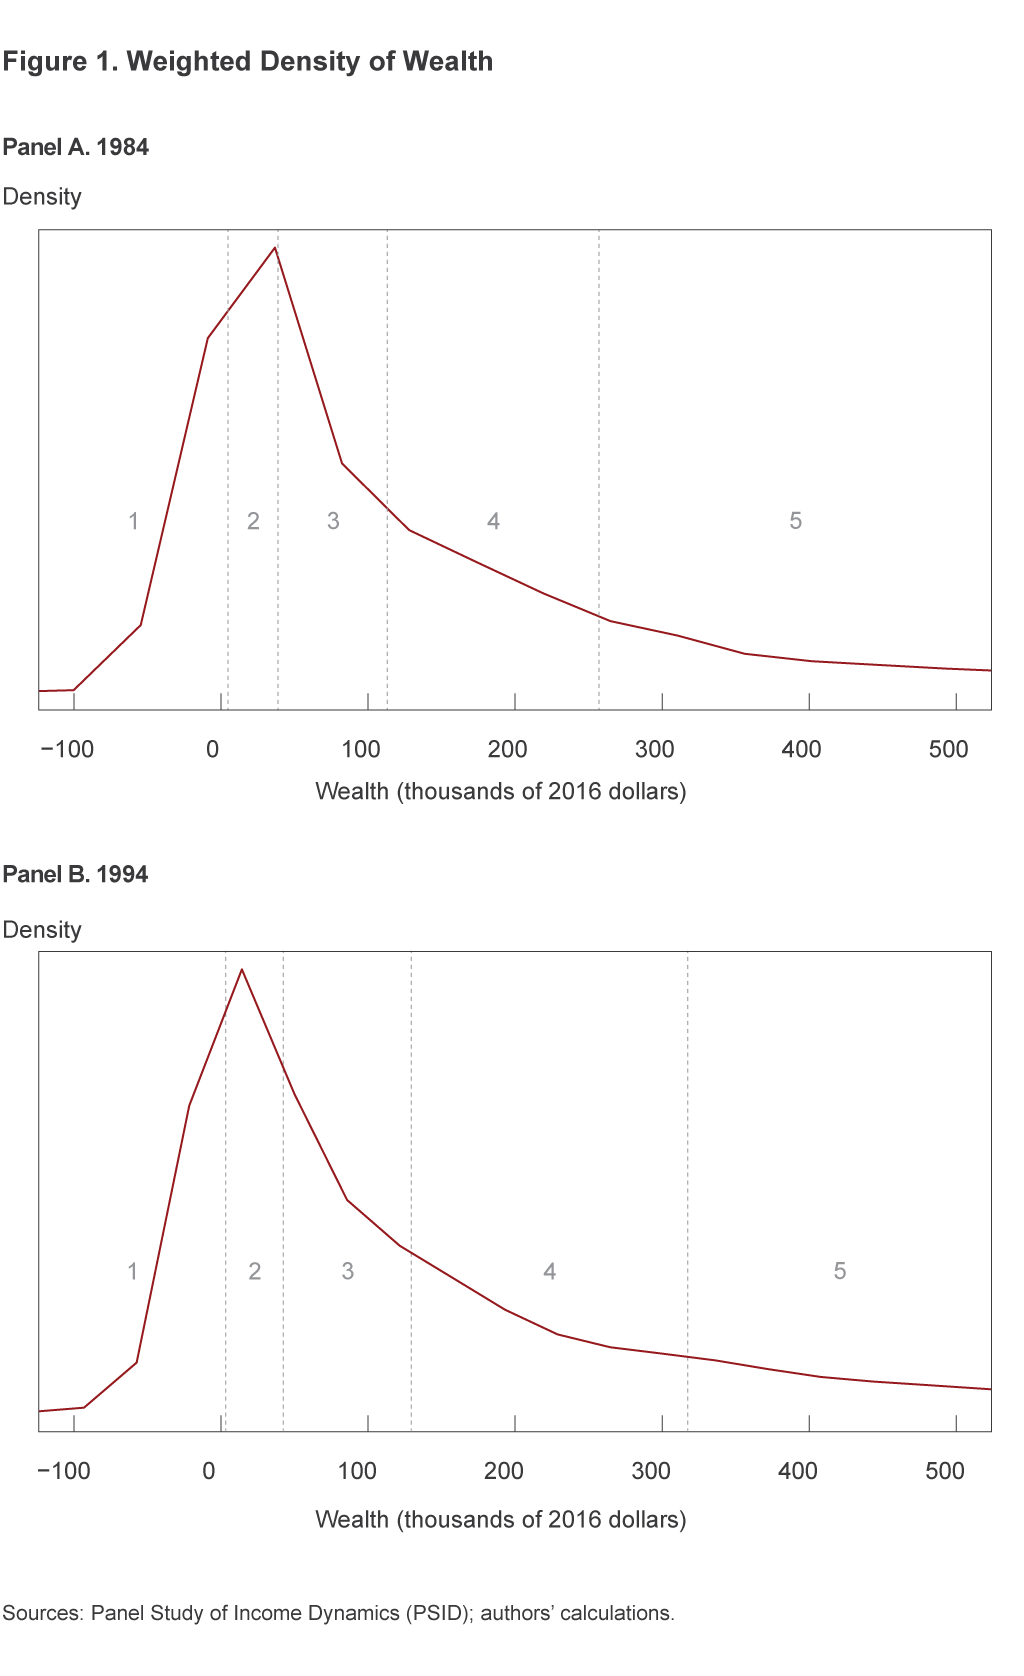 Figure 1. Weighted Density of Wealth